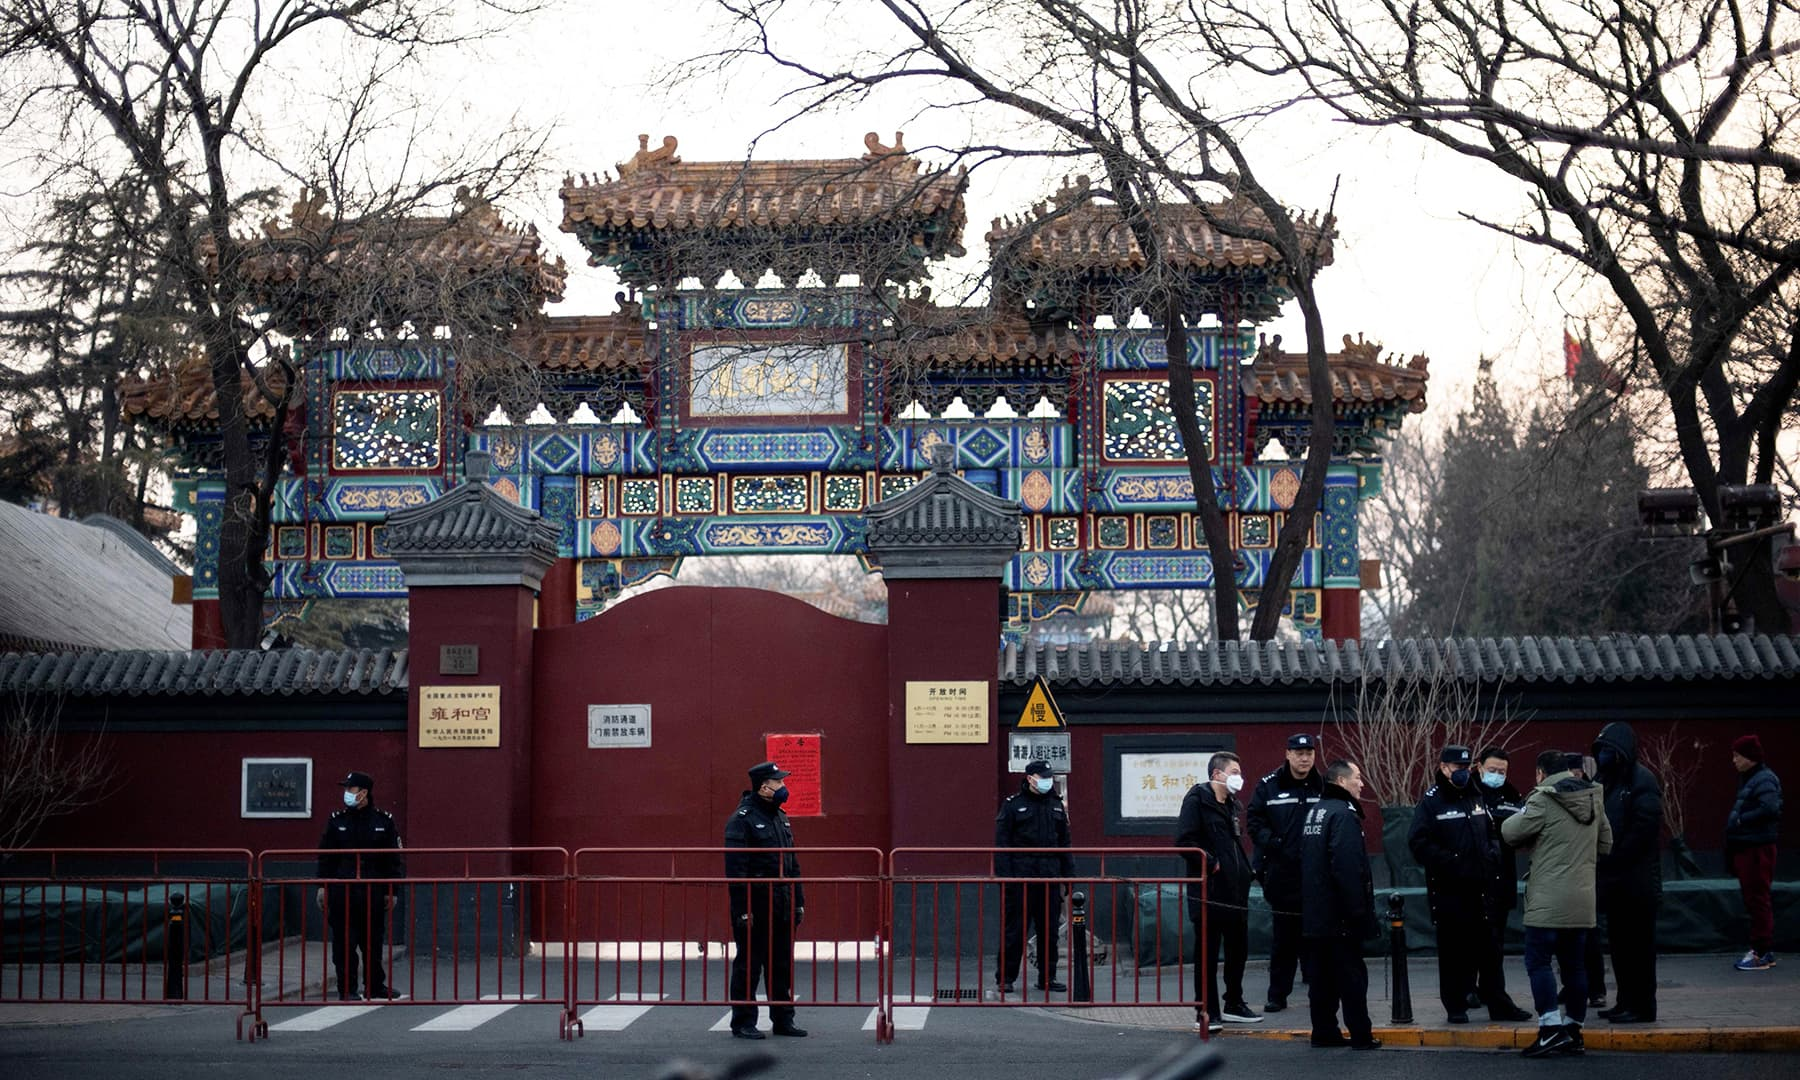 Policemen wearing protective facemasks to help stop the spread of a deadly SARS-like virus which originated in the central city of Wuhan, are seen in front of the closed gate of the Lama Temple in Beijing on January 25, 2020. — AFP